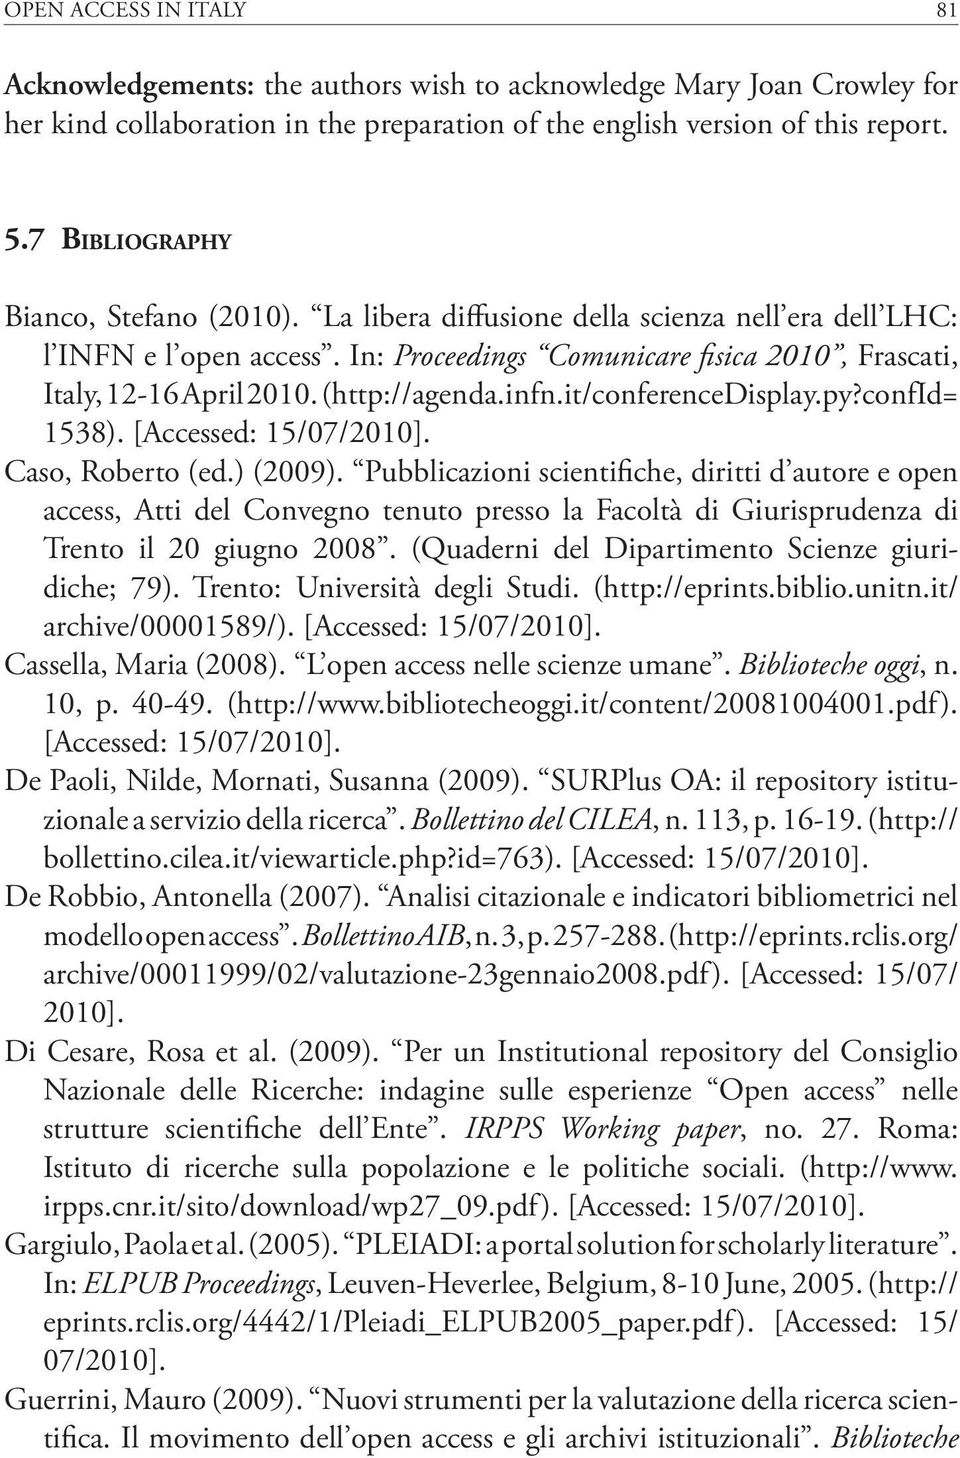 (http://agenda.infn.it/conferencedisplay.py?confid= 1538). [Accessed: 15/07/2010]. Caso, Roberto (ed.) (2009).